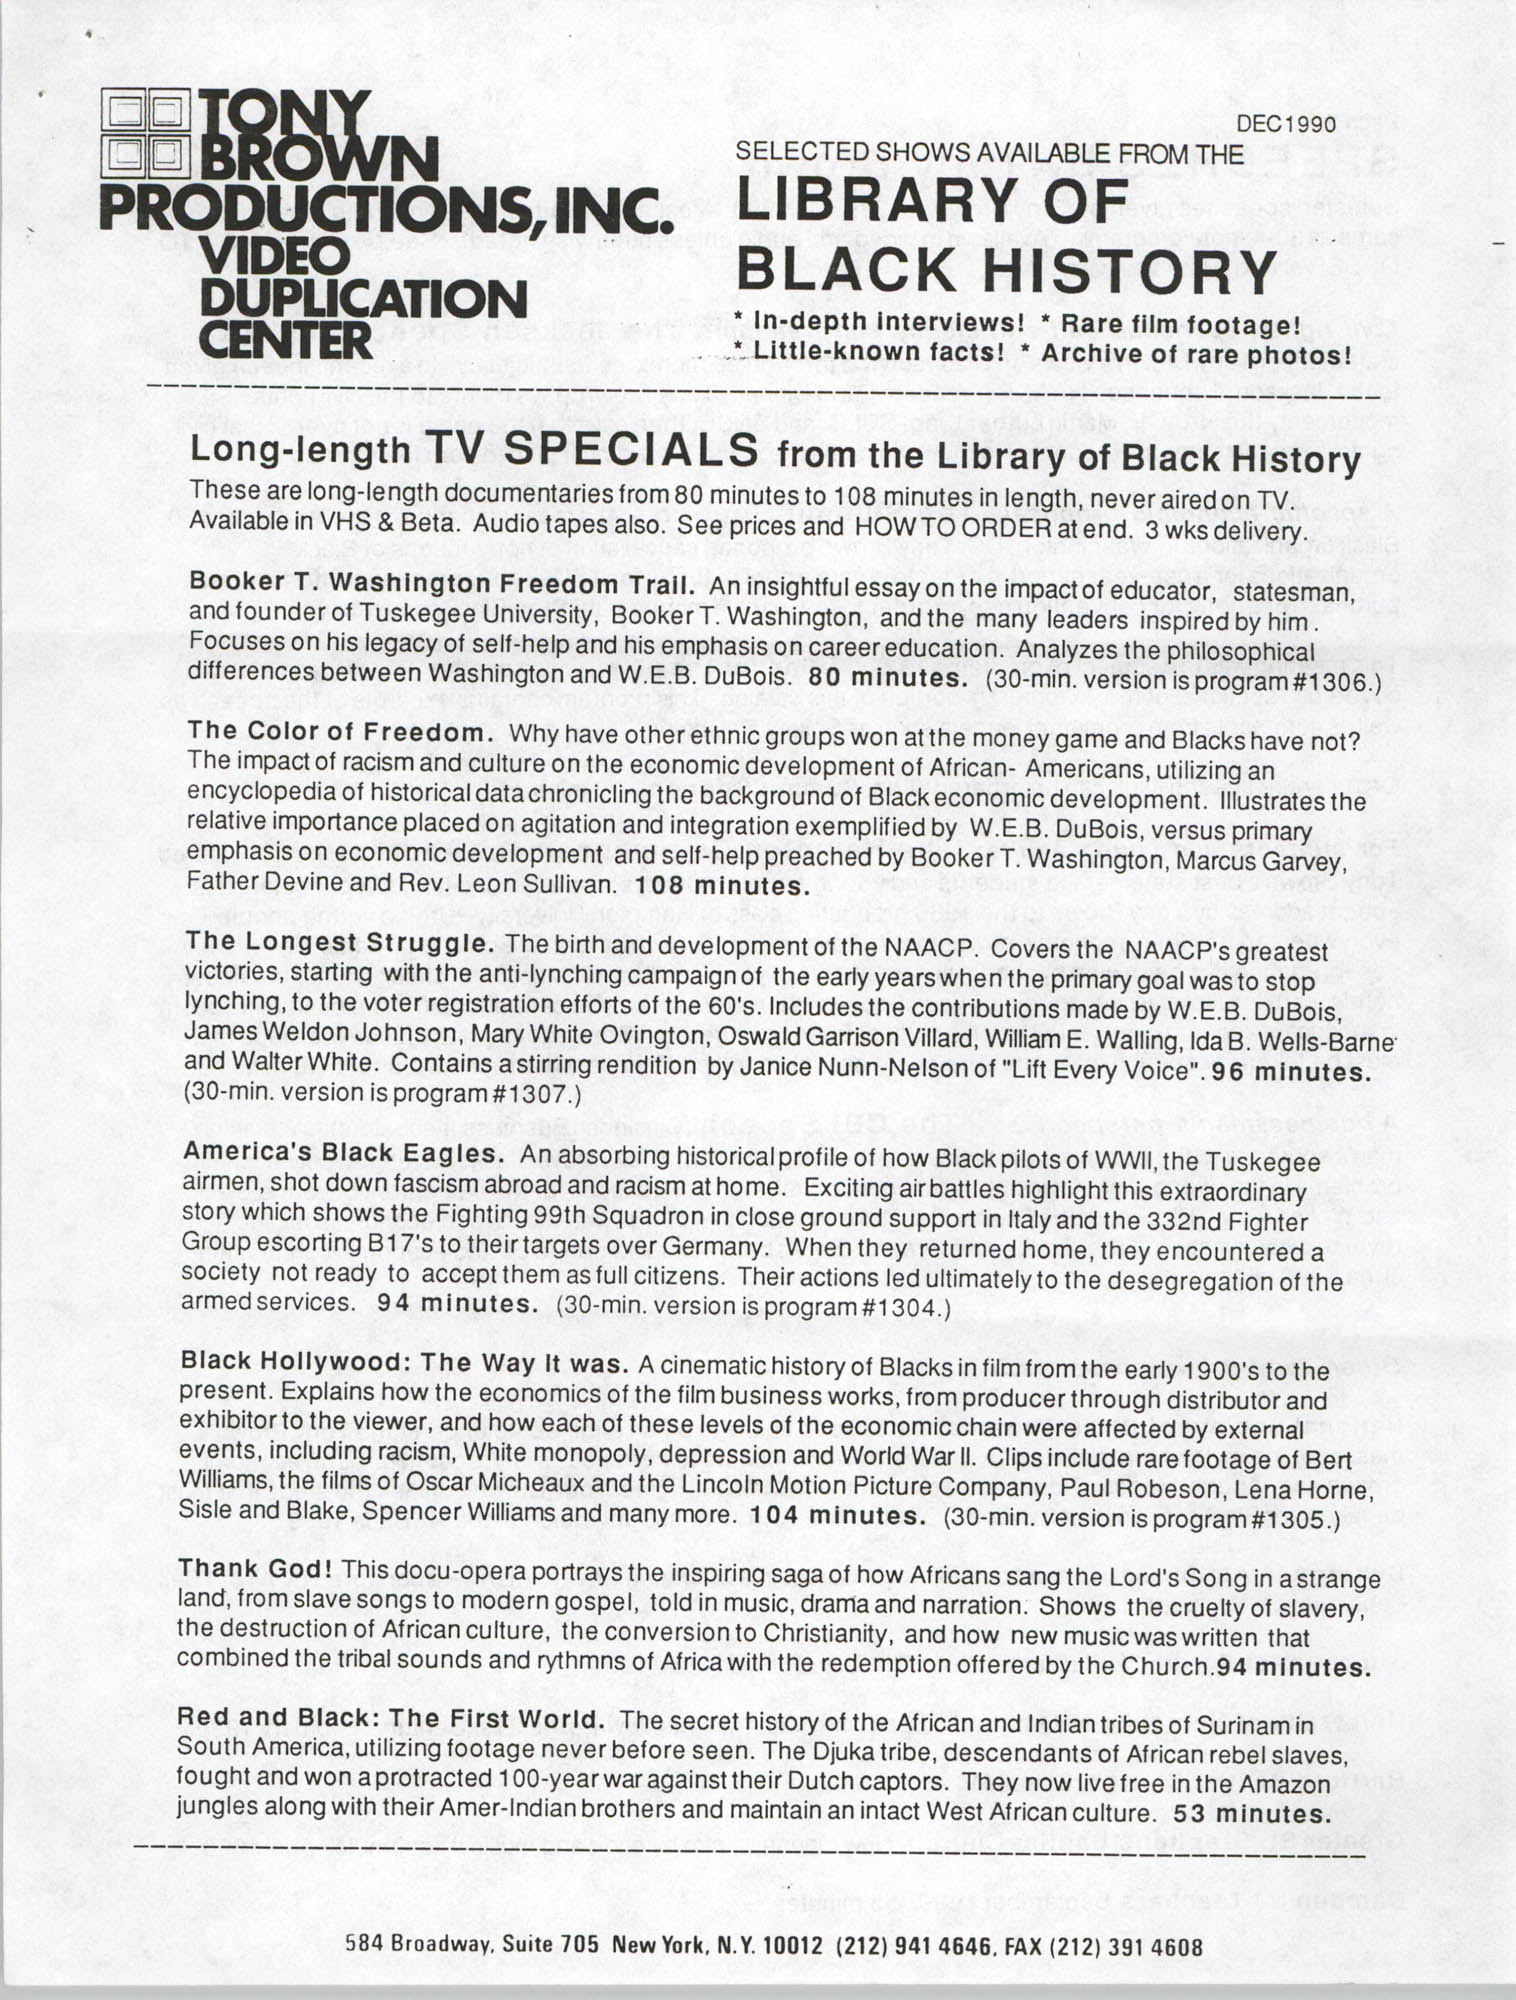 Selected Shows Available from the Library of Black History, December 1990, Page 1